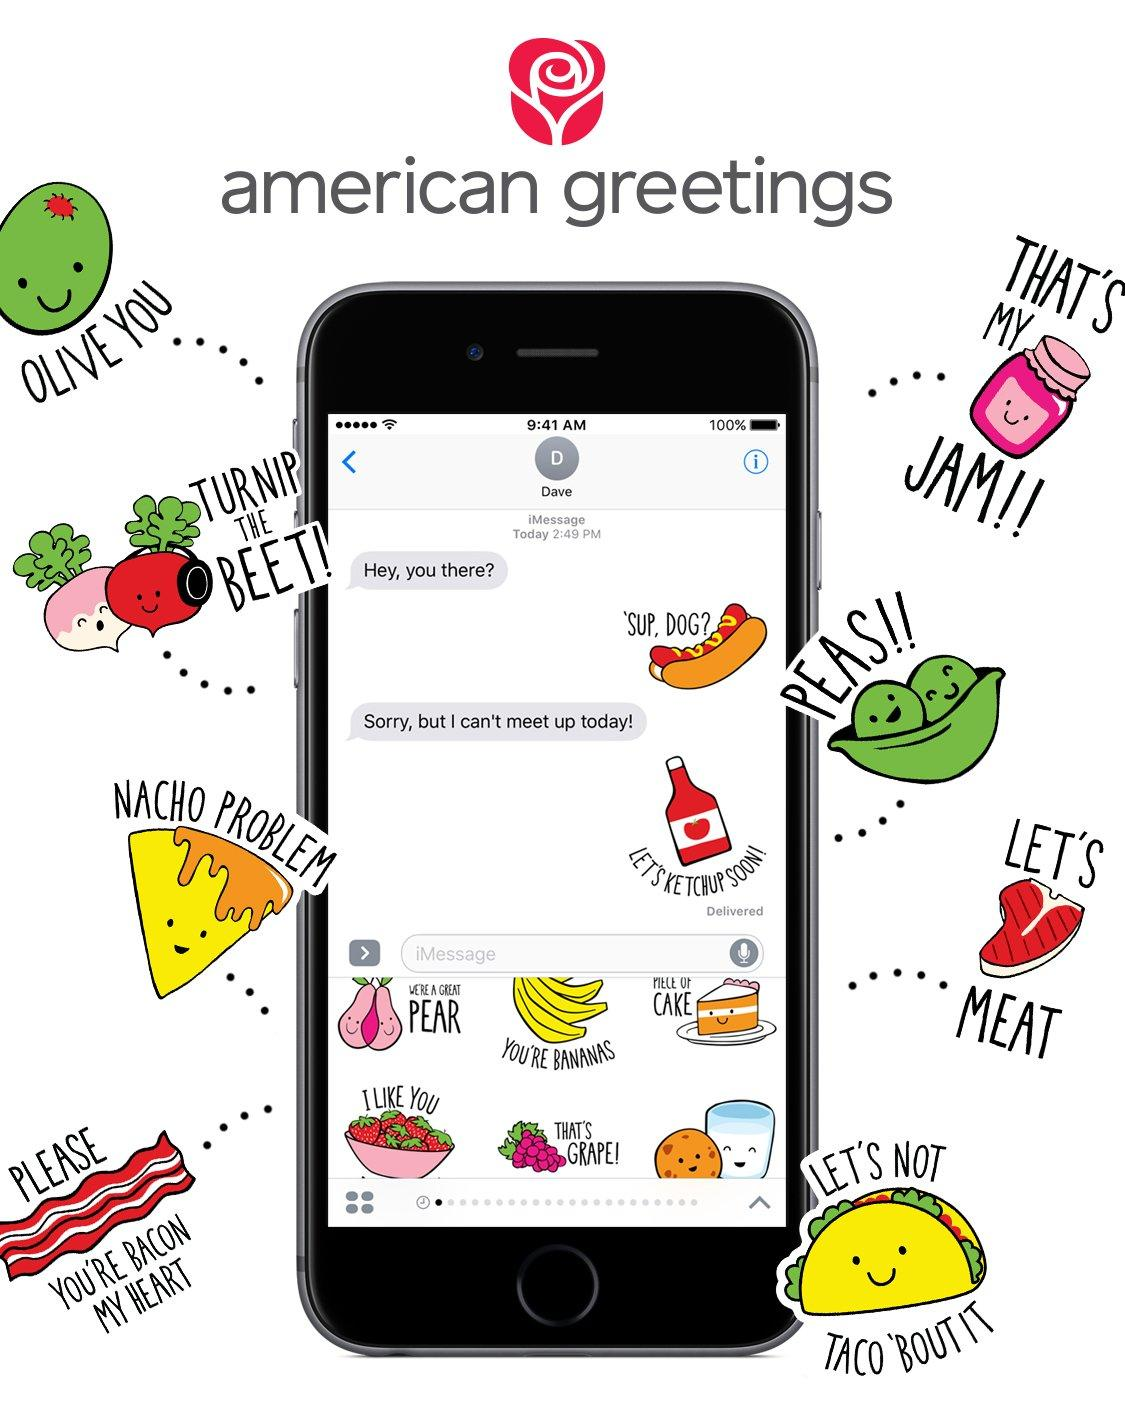 American greetings debuts brand new sticker packs for imessage m4hsunfo